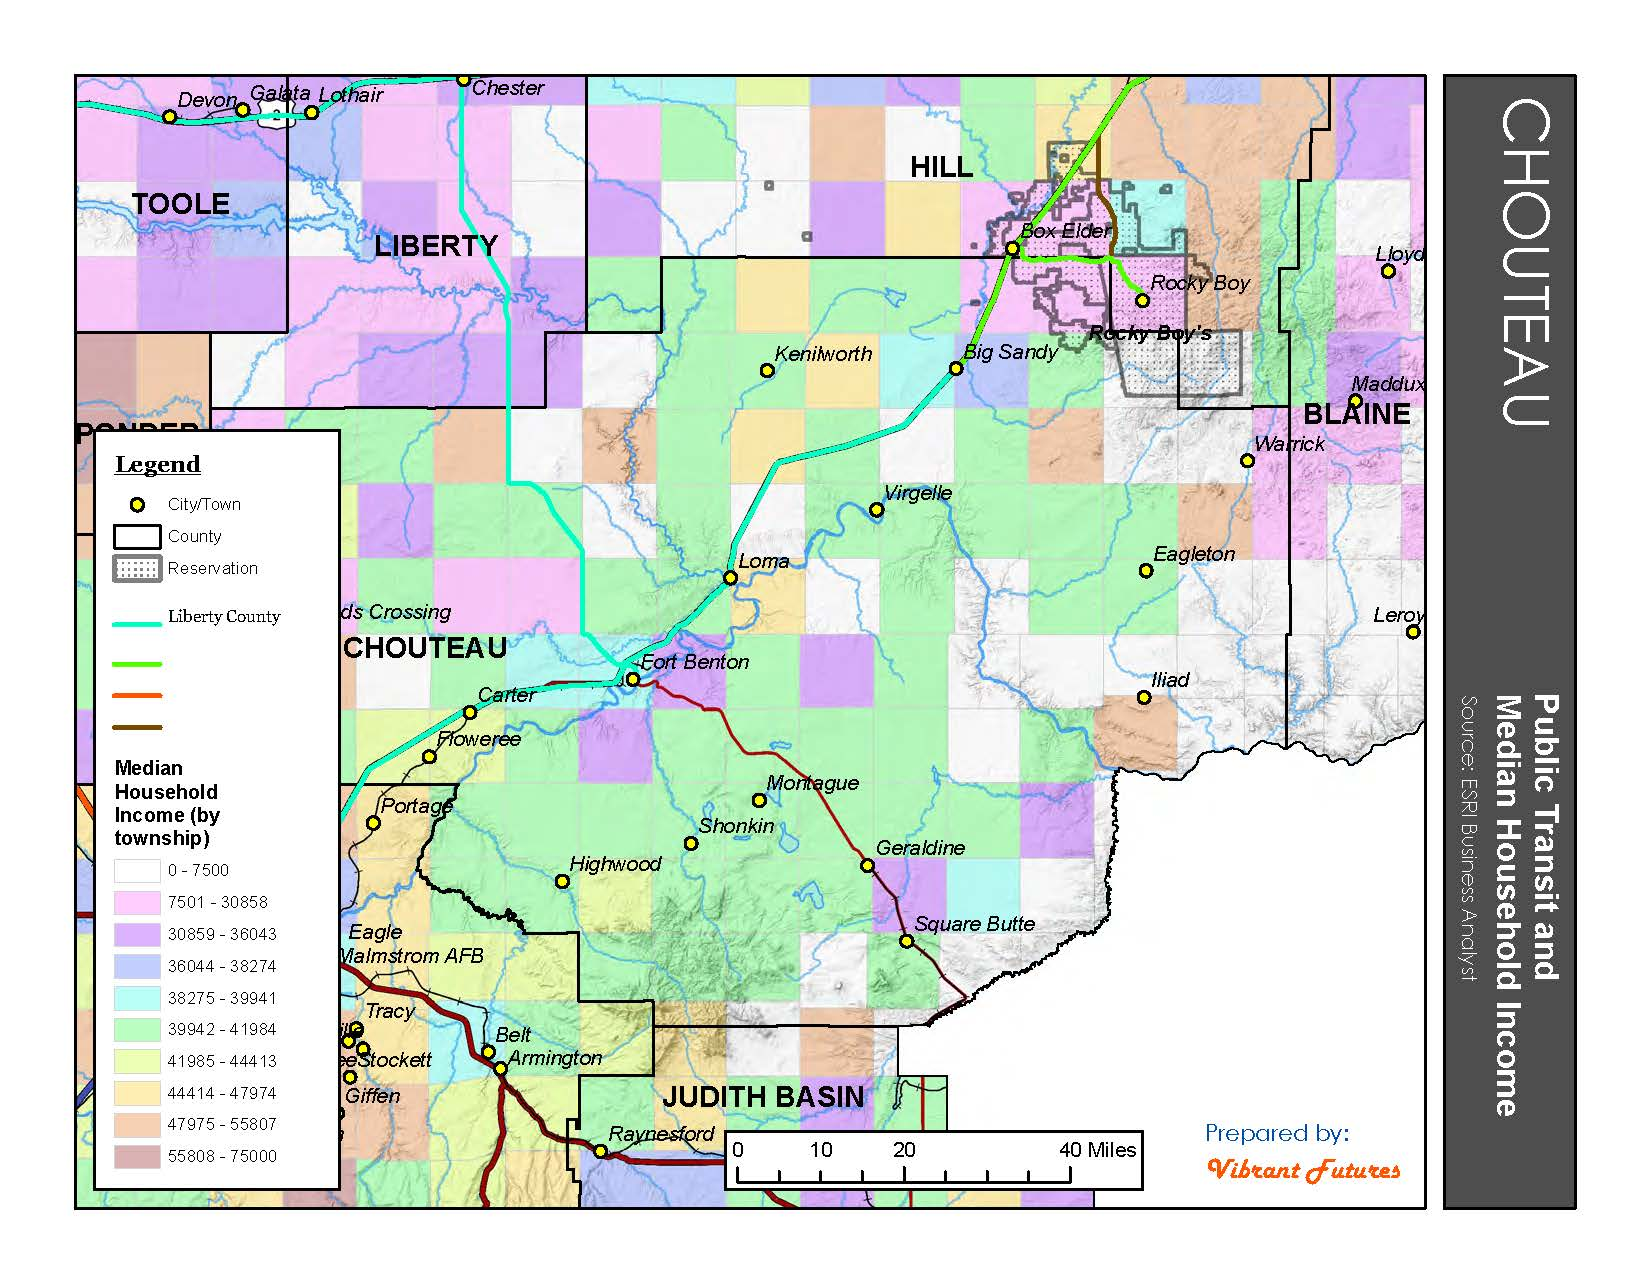 Transit and Income (by Township) Chouteau County